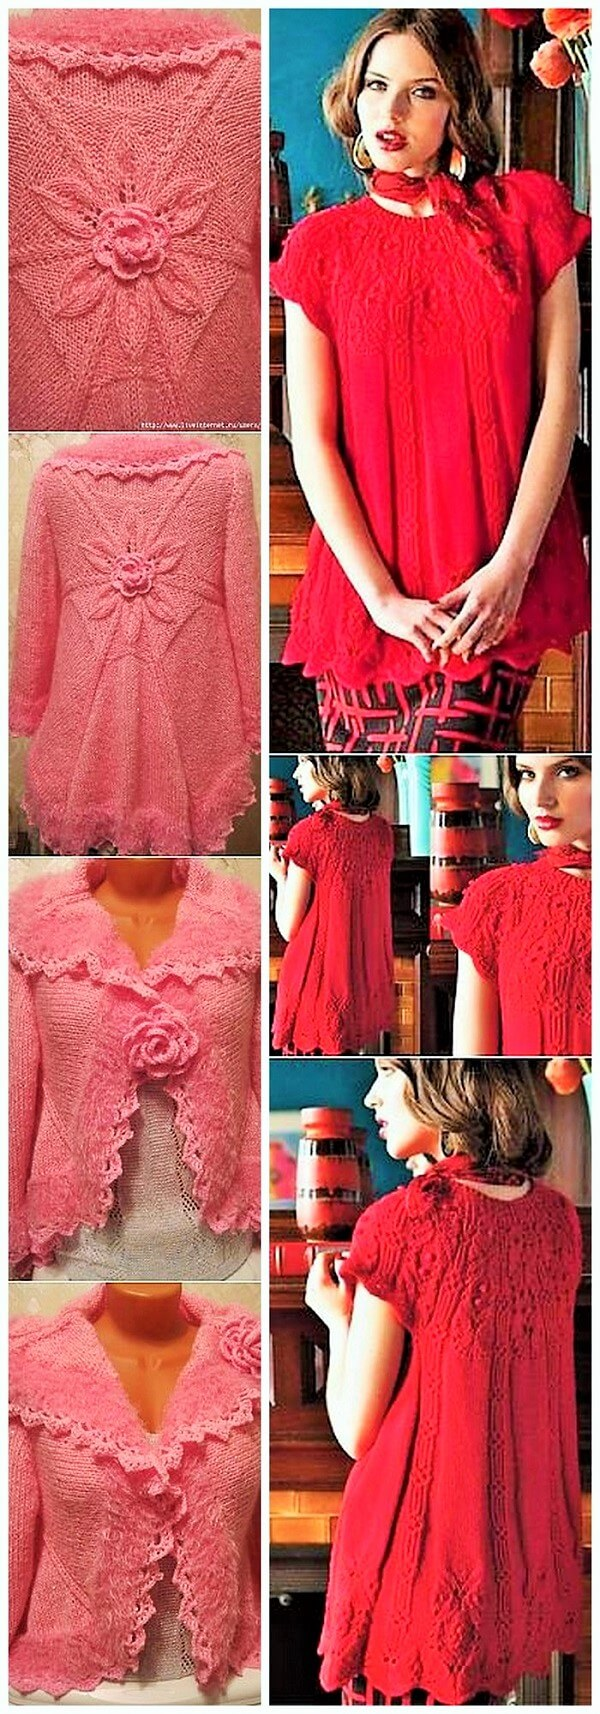 homemade with crochet Ladies Fashion Ideas -6